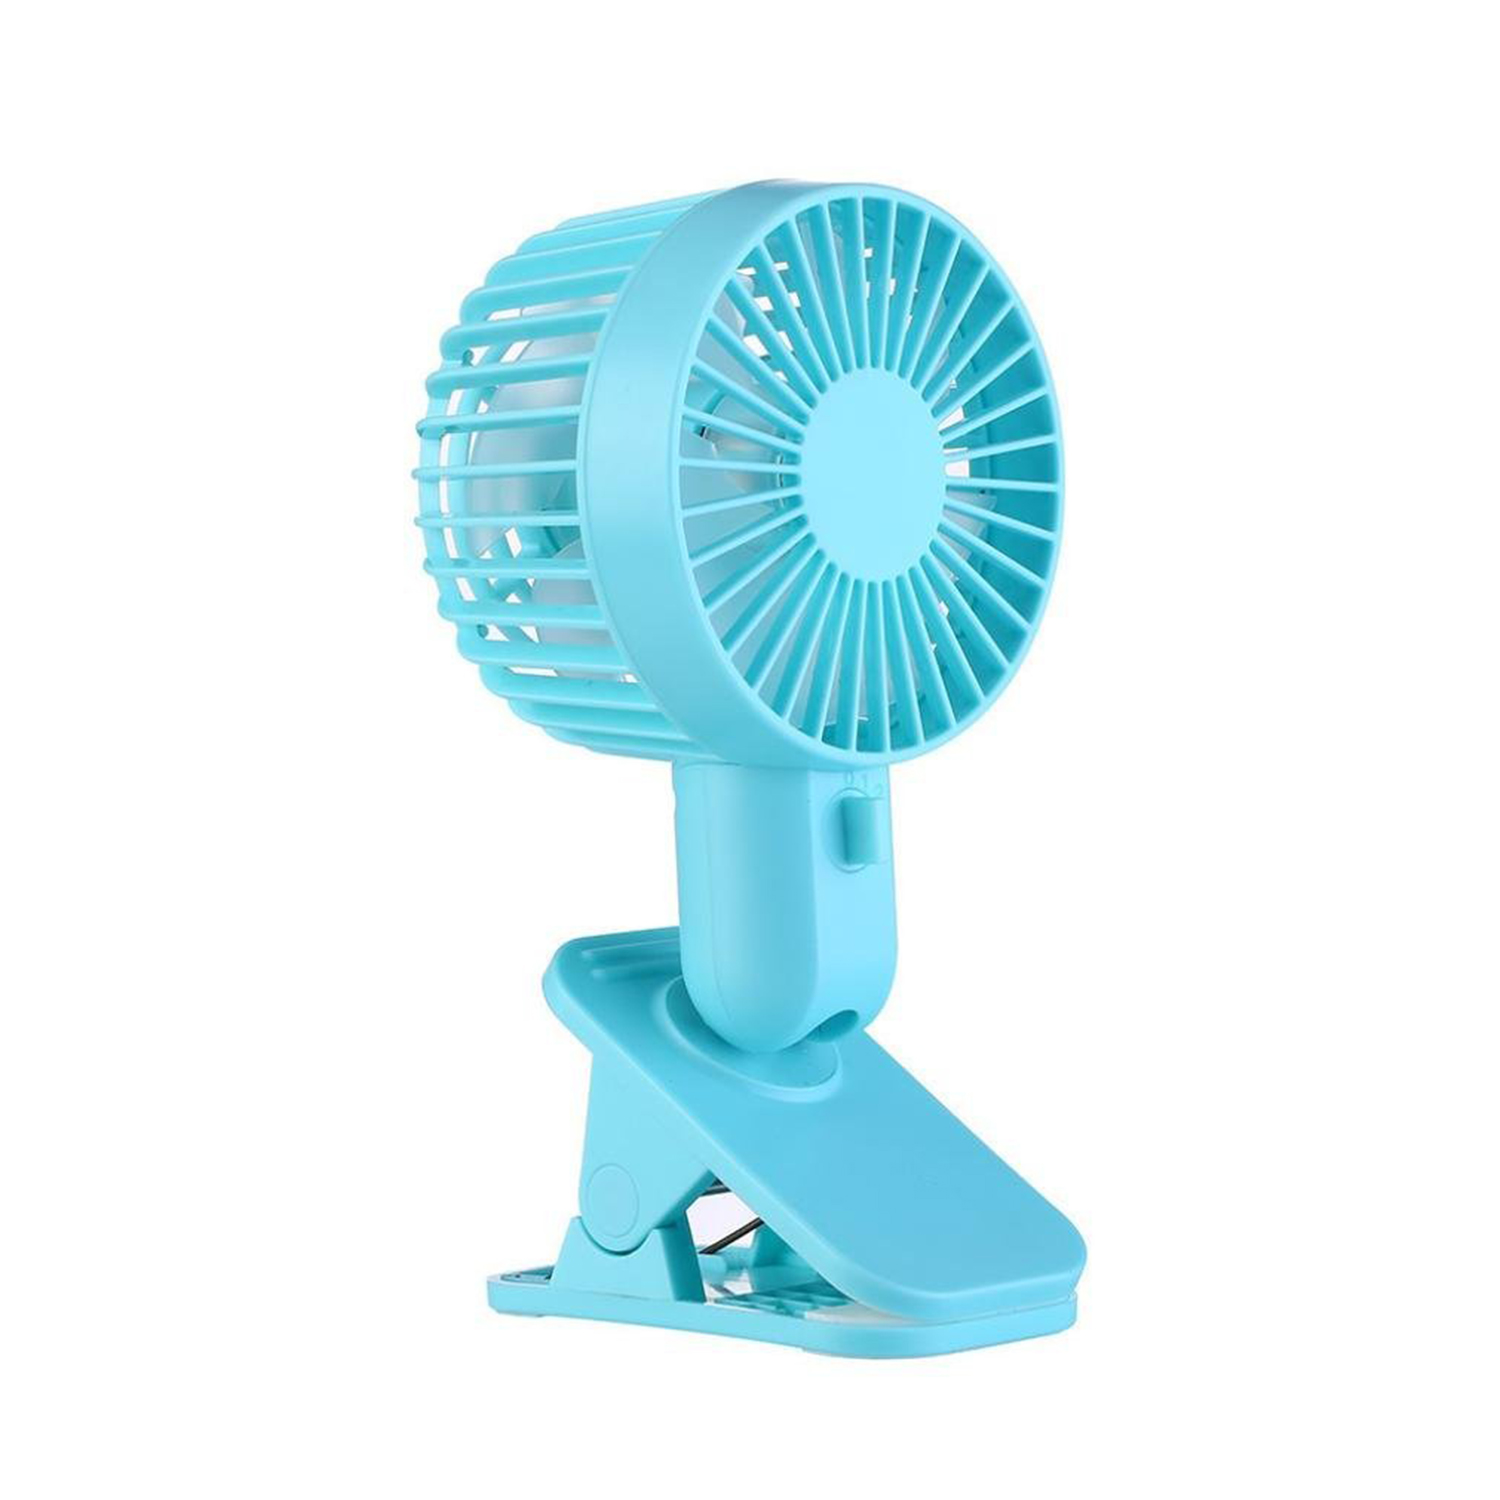 1PC Protable Double Turn Leaves Fan Electric Fans USB Table Stand Fans 2-Speed Wind Mini Electric Personal Hand Desktop Fan1PC Protable Double Turn Leaves Fan Electric Fans USB Table Stand Fans 2-Speed Wind Mini Electric Personal Hand Desktop Fan